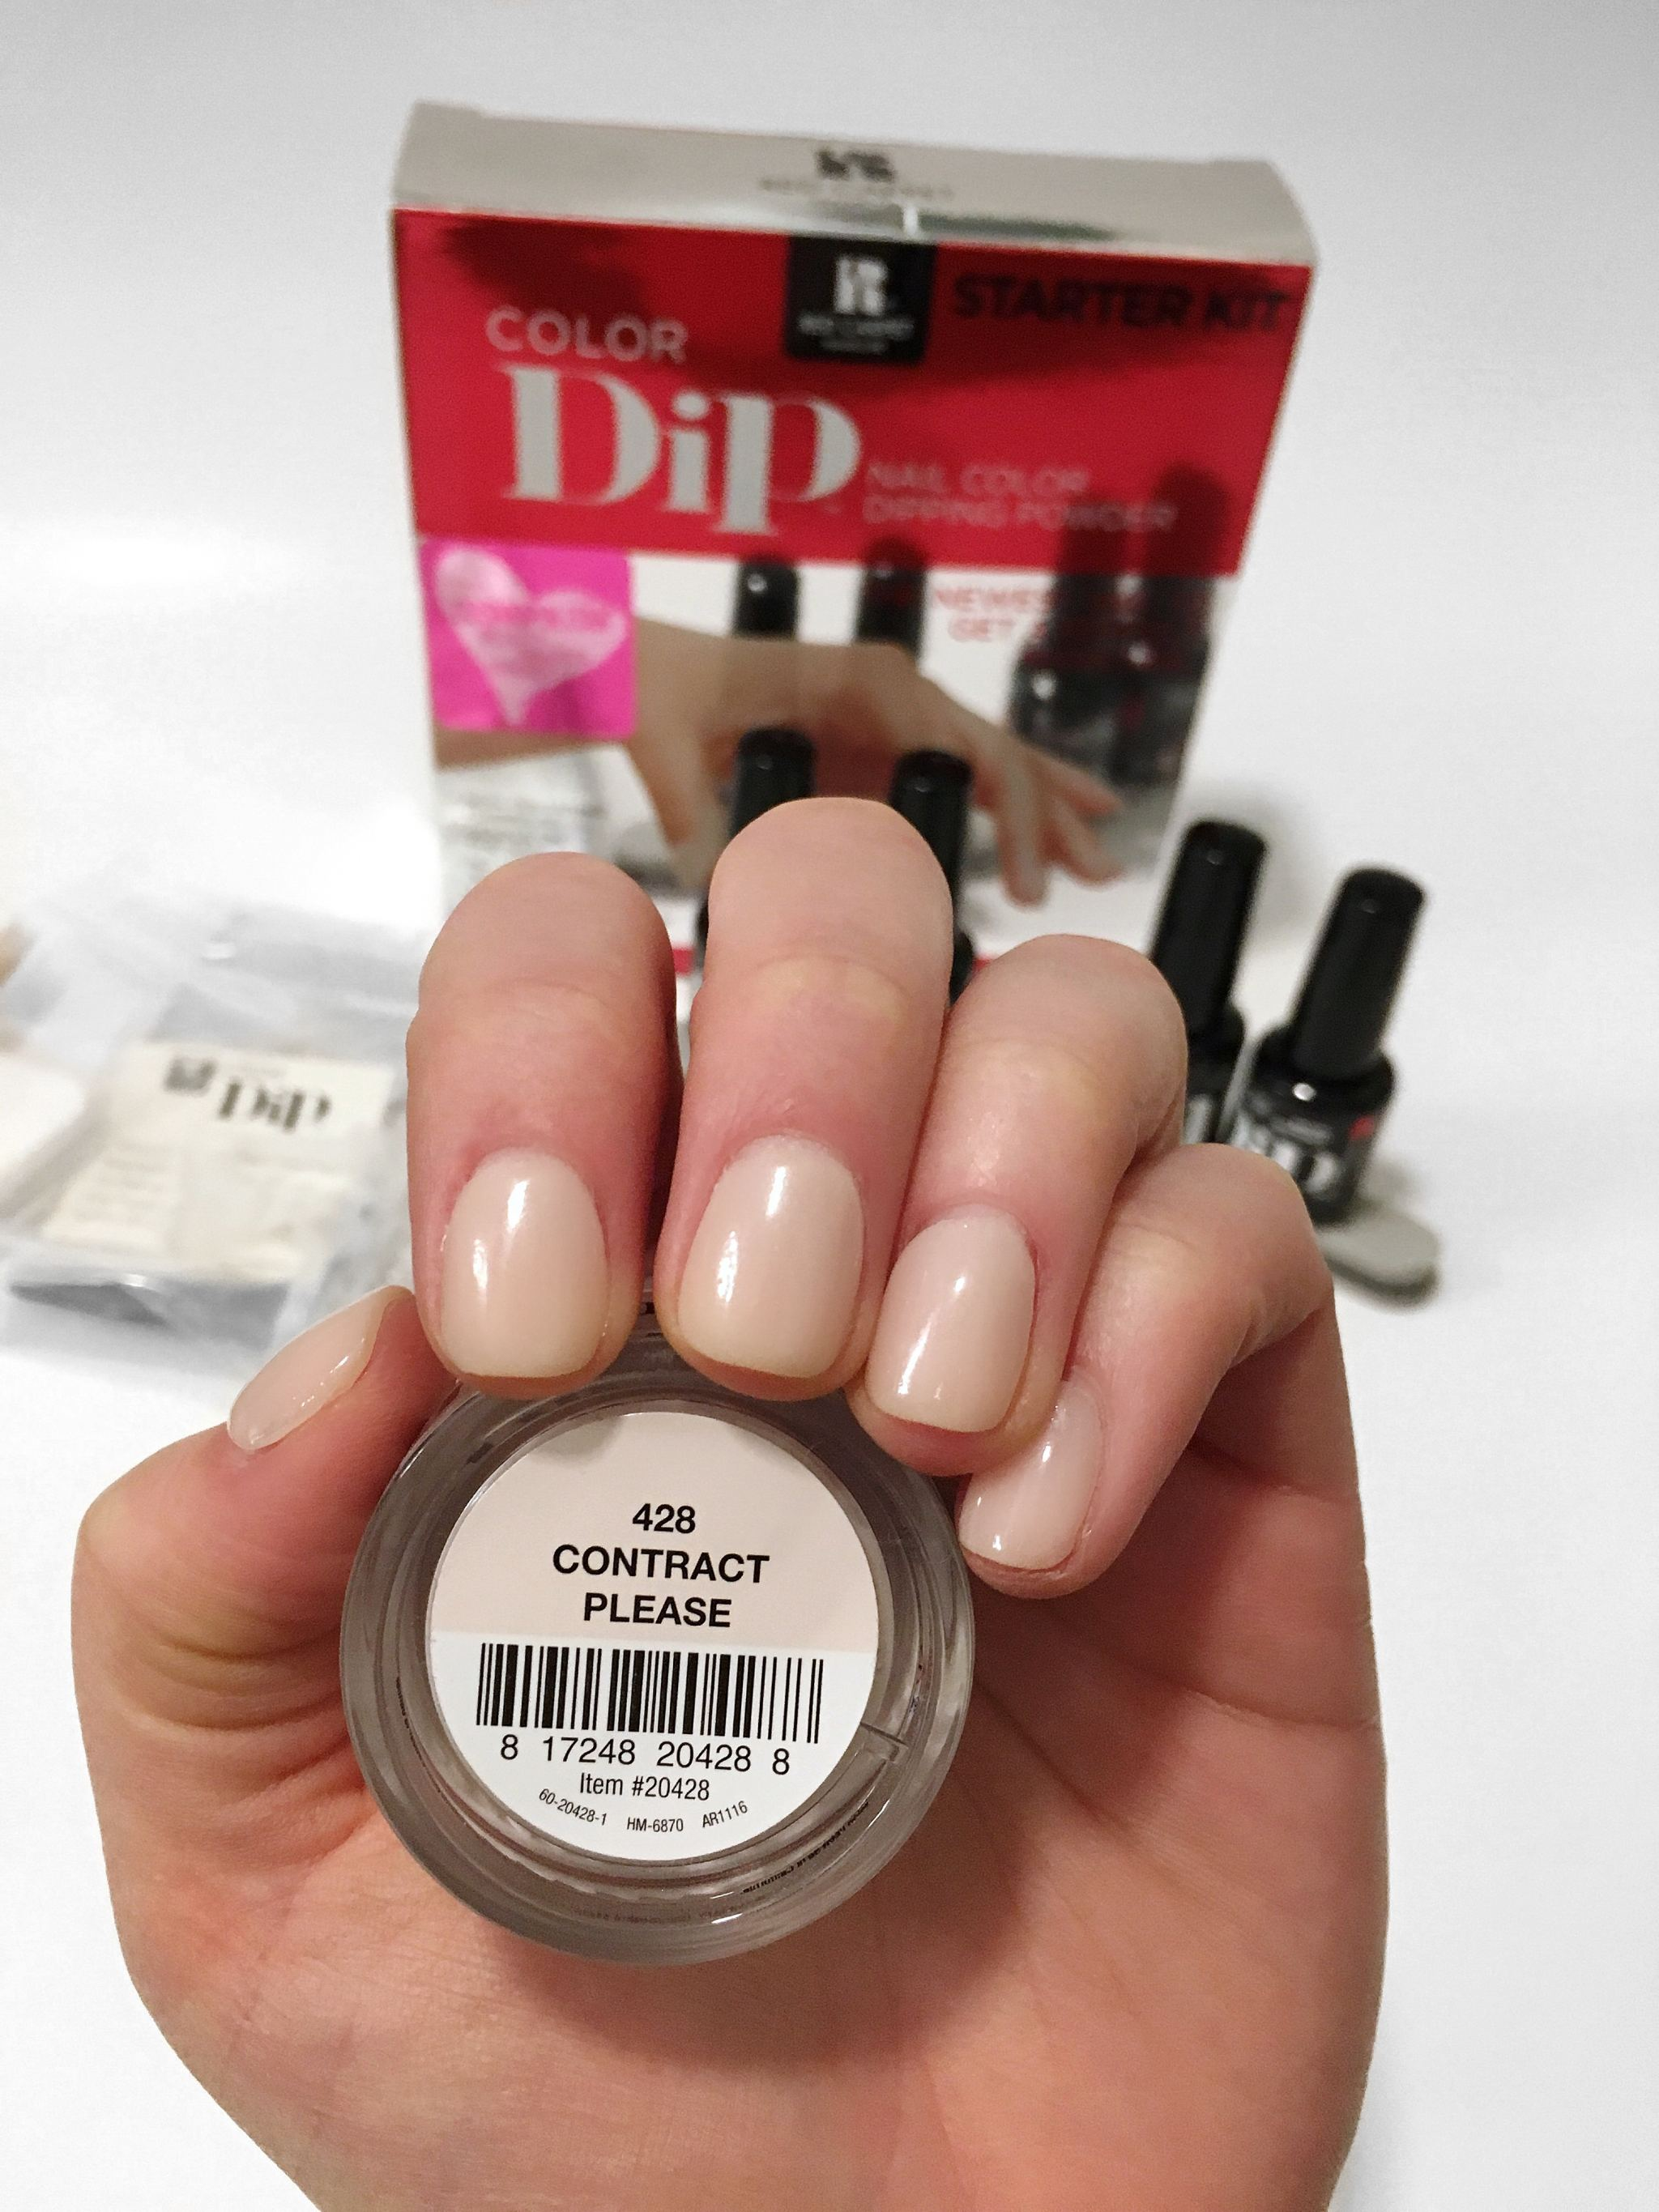 Red Carpet Manicure Dip powder review.JPG